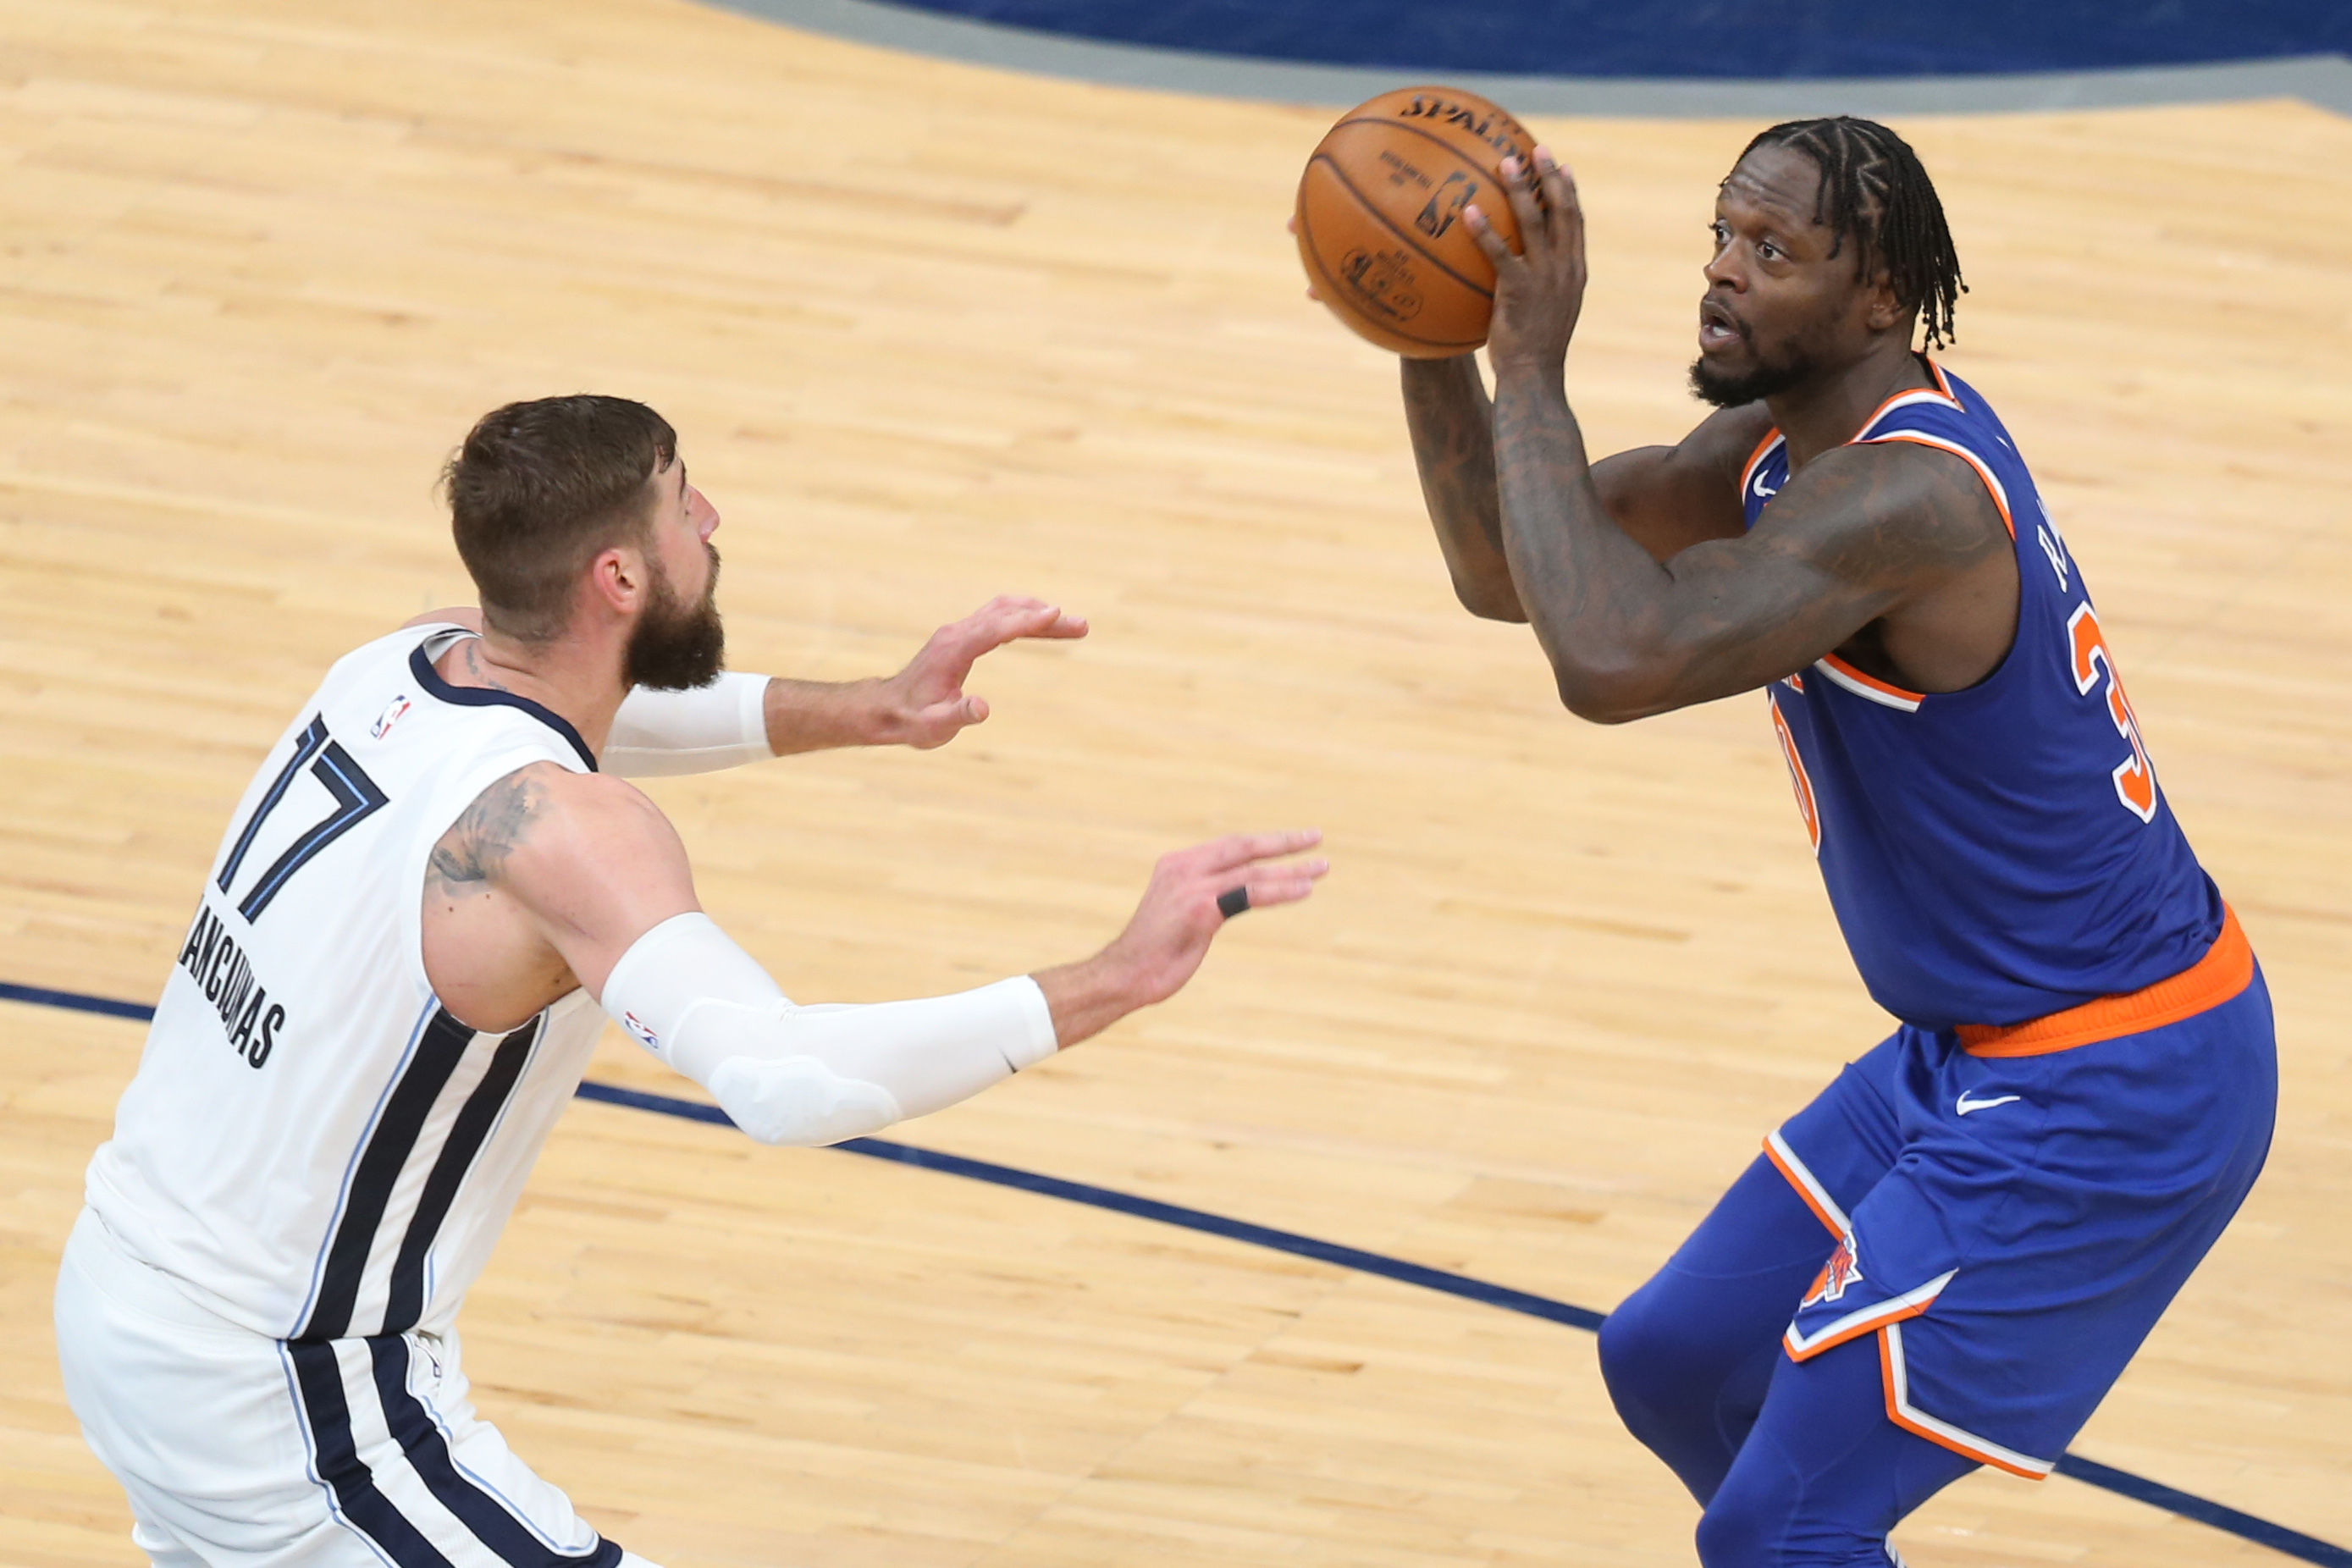 May 3, 2021; Memphis, Tennessee, USA; New York Knicks forward Julius Randle (30) shoots as Memphis Grizzlies center Jonas Valanciunas (17) defends in the fourth quarter at FedExForum. Knicks won 118-104. Mandatory Credit: Nelson Chenault-USA TODAY Sports